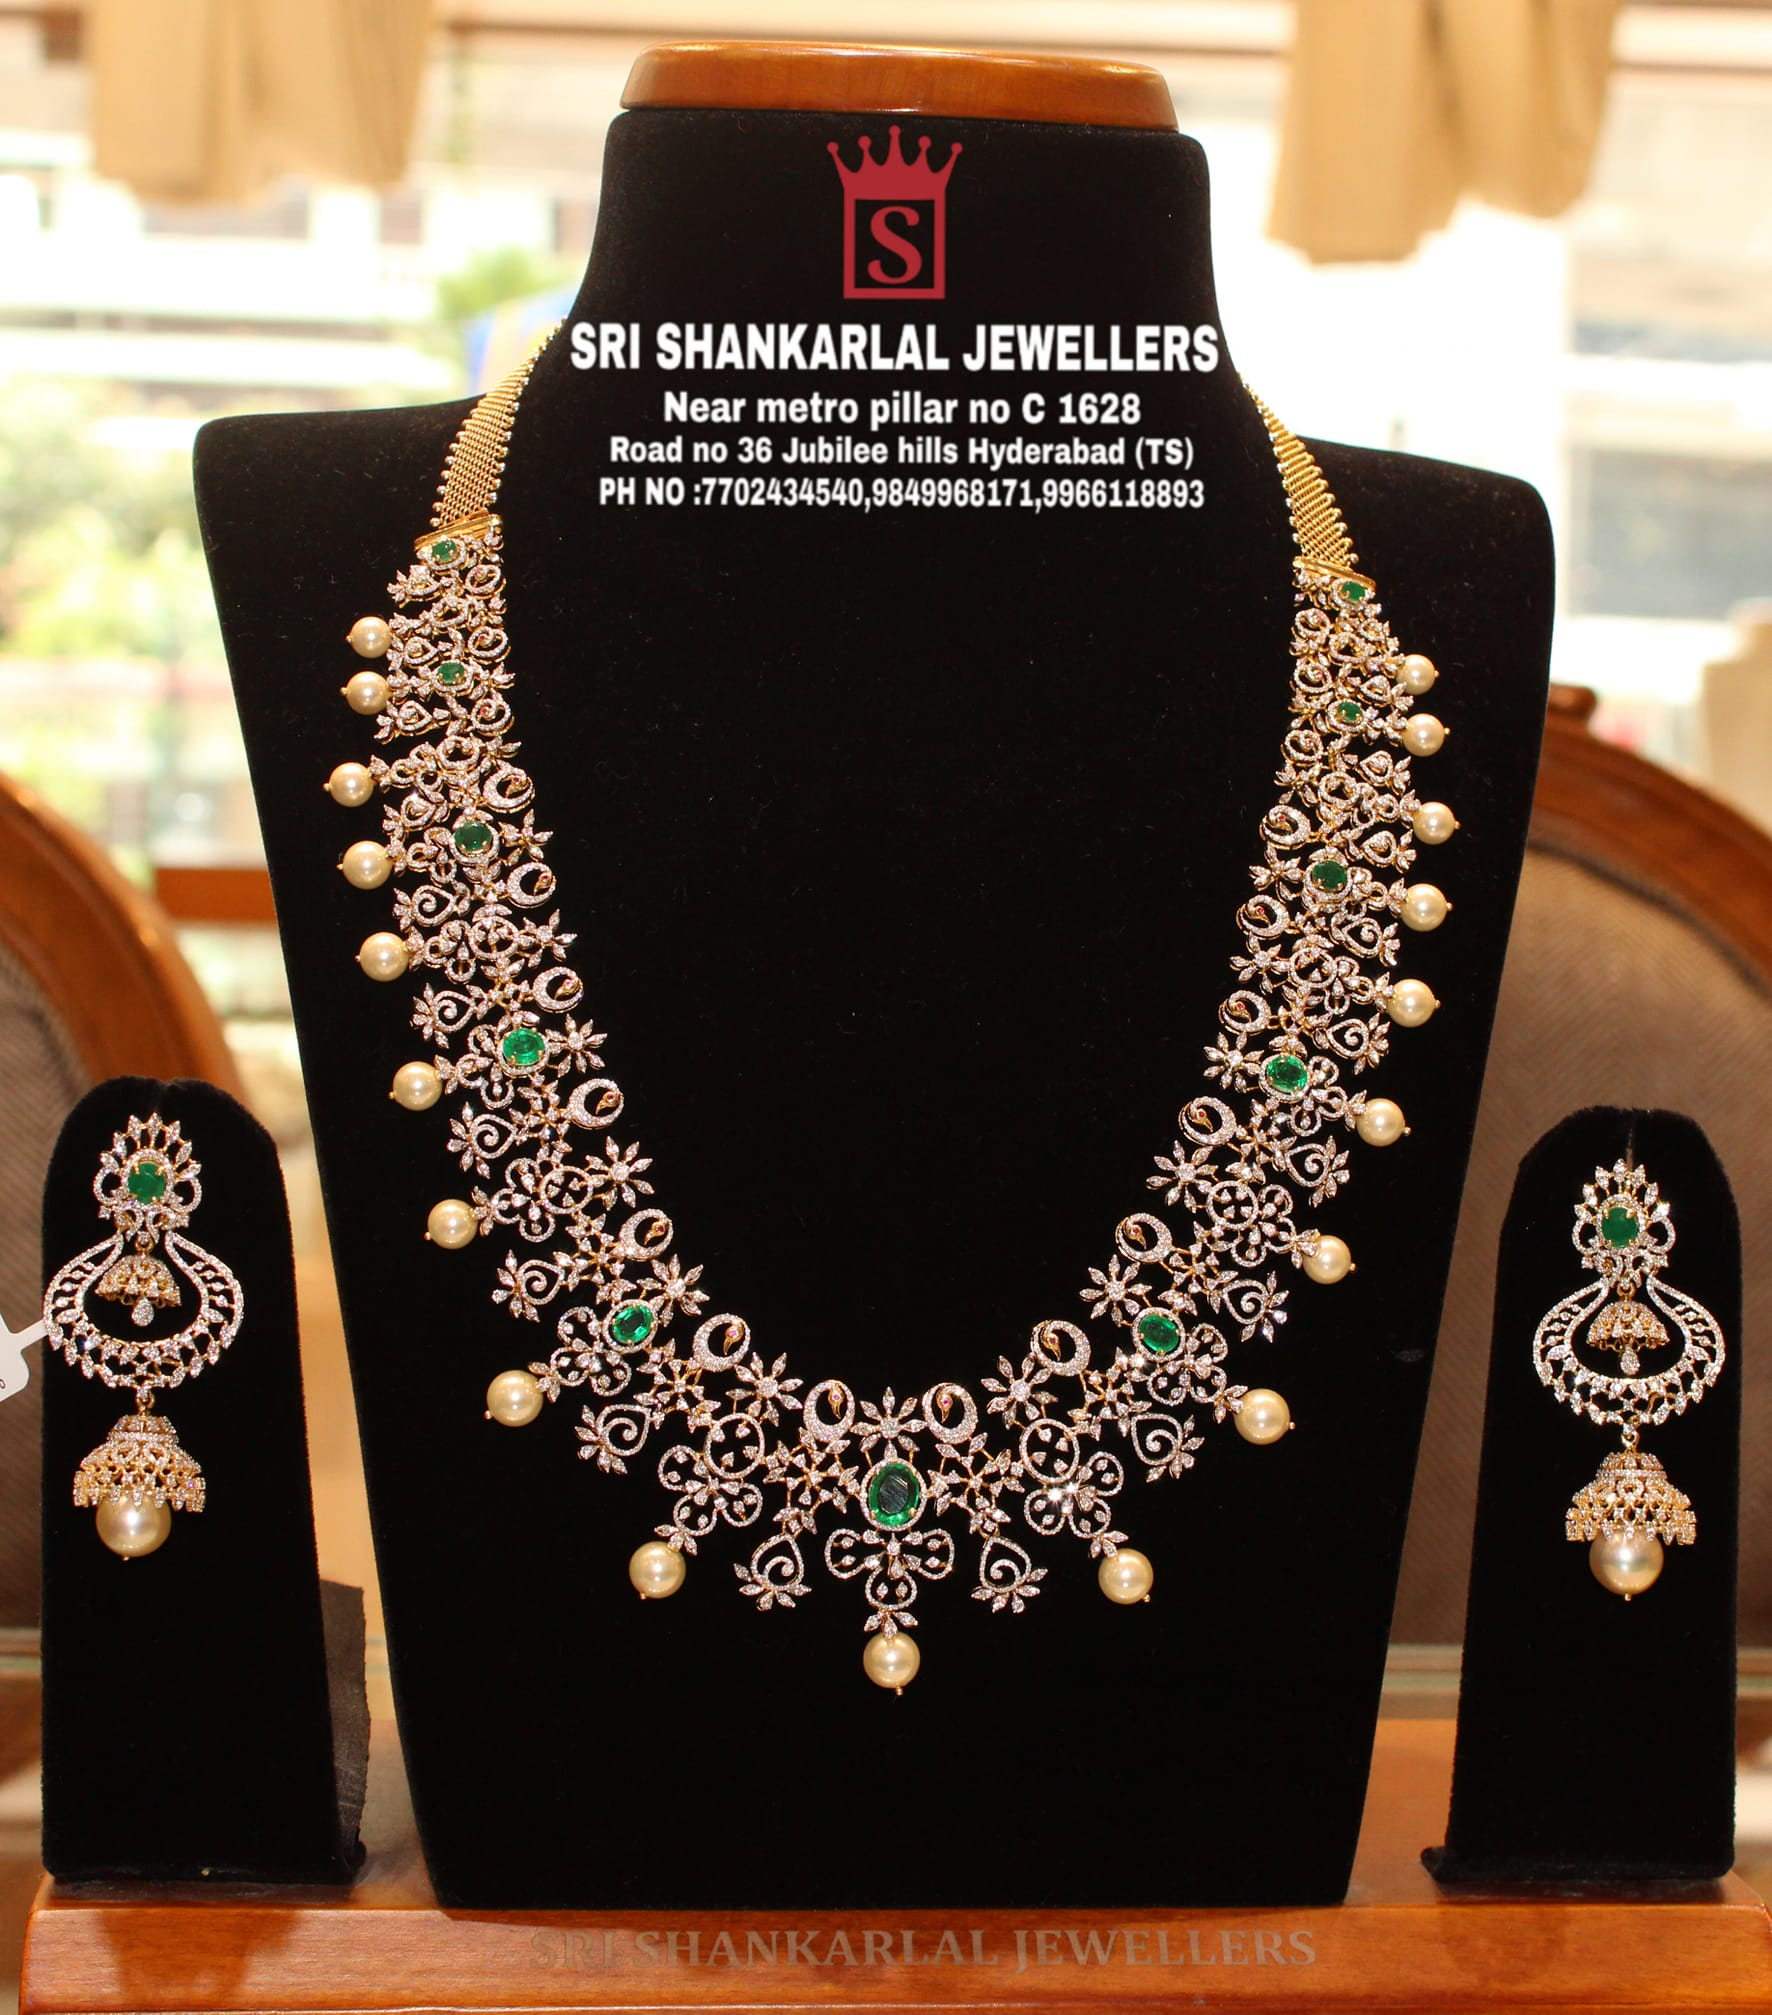 presenting Diamond Long Haram and Jumka Jewellery in light weight and heavy looking jewellery and vast collection 2021-09-02